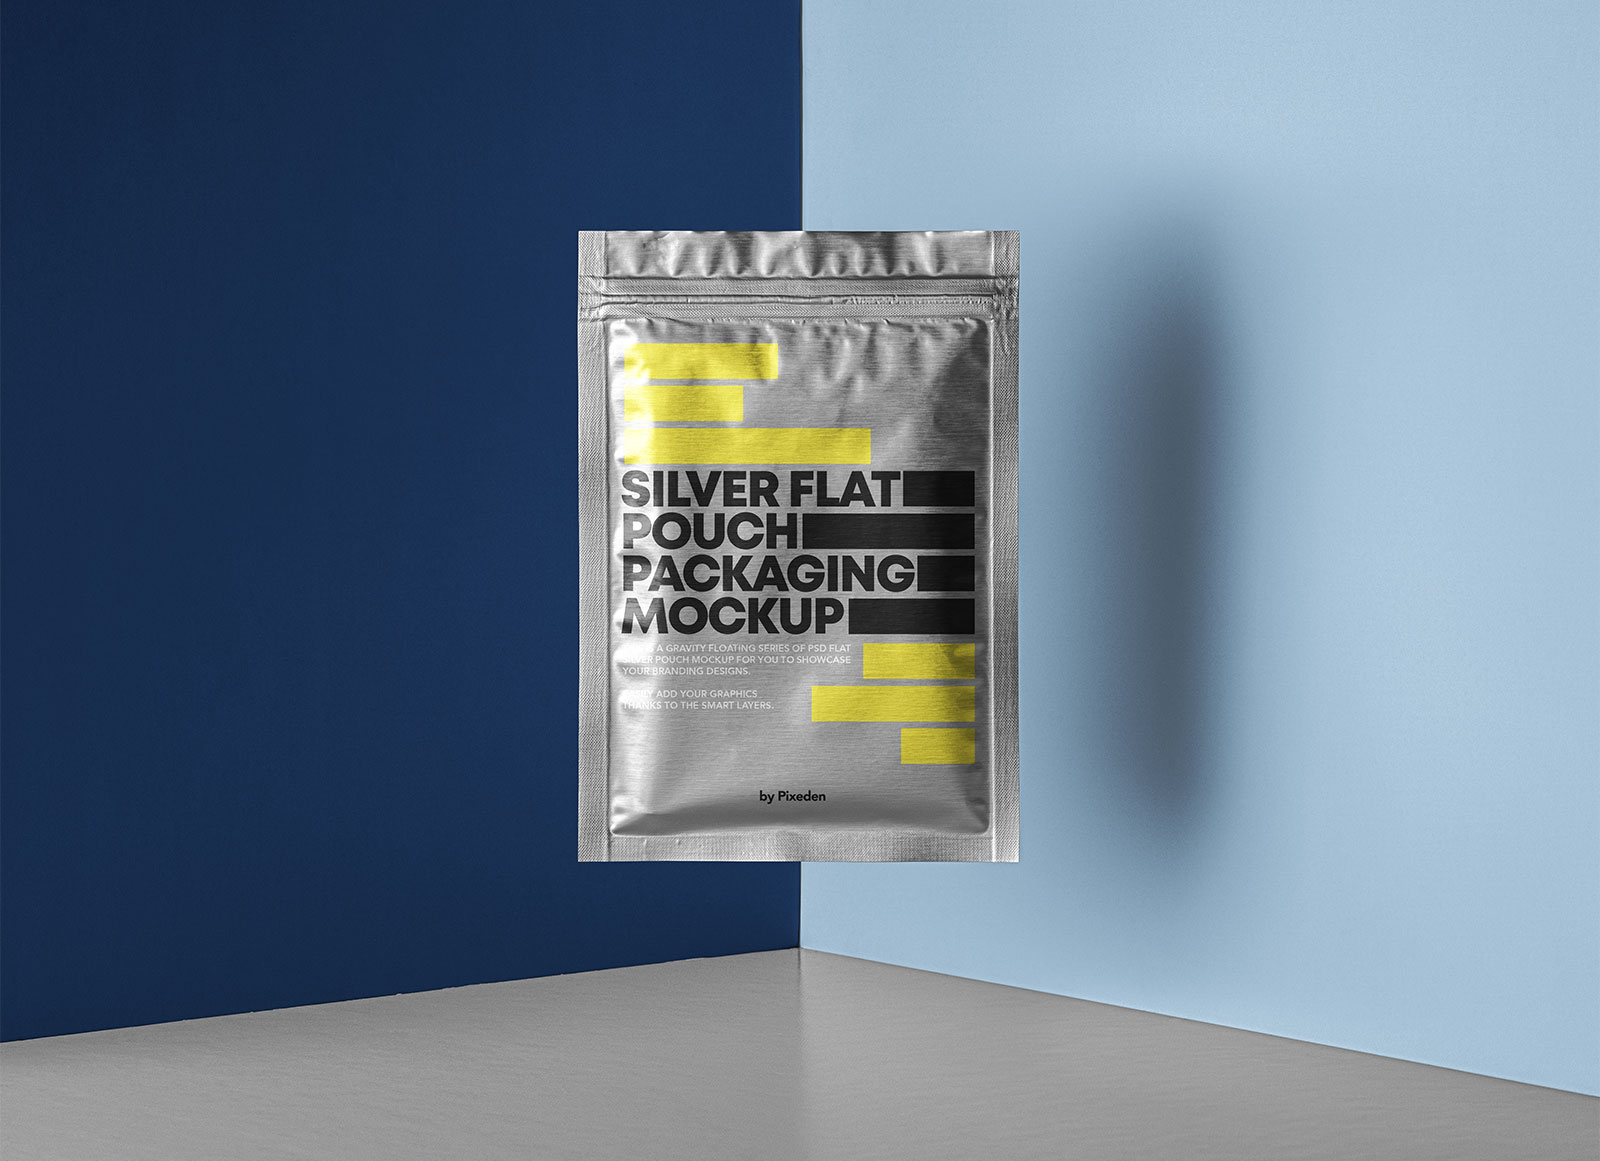 Free-Side-Seal-Floating-Silver-Pouch-Packaging-Mockup-PSD